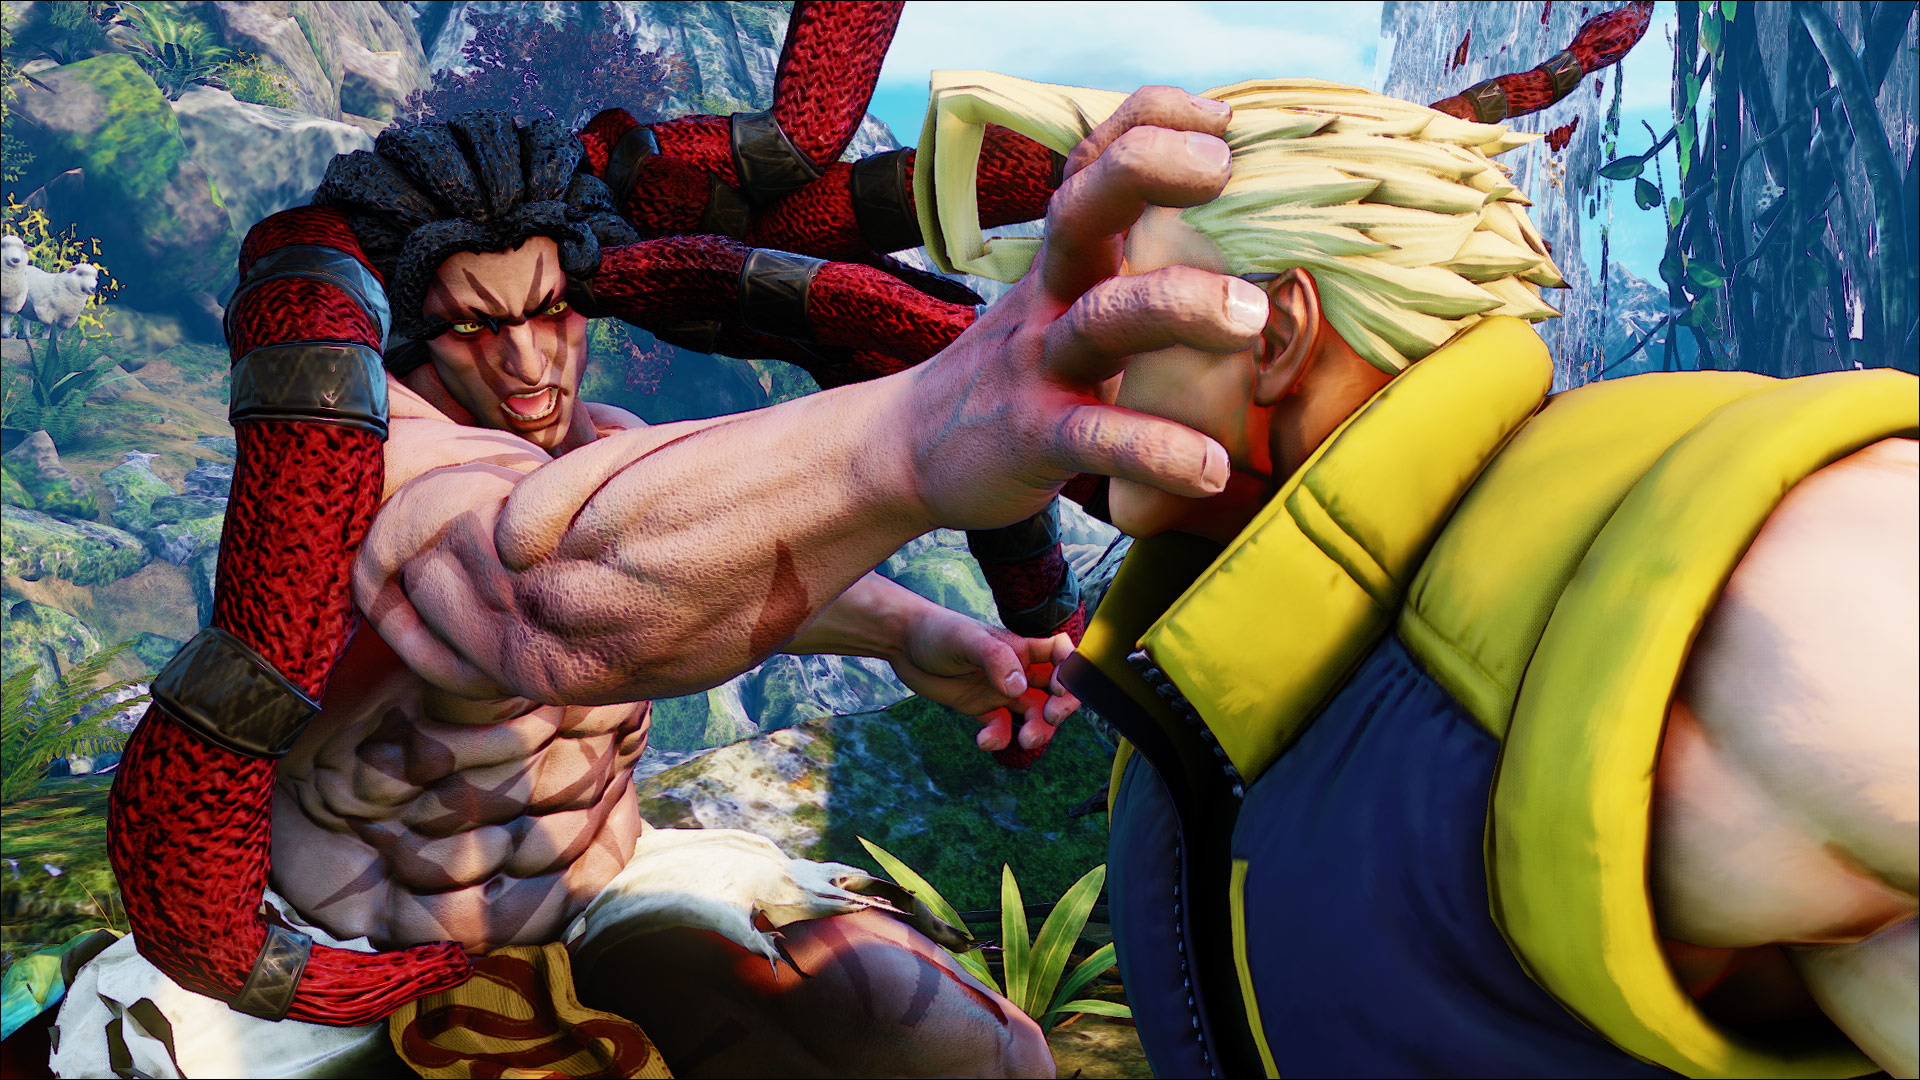 Official screenshots of Necalli in SF5 9 out of 17 image gallery